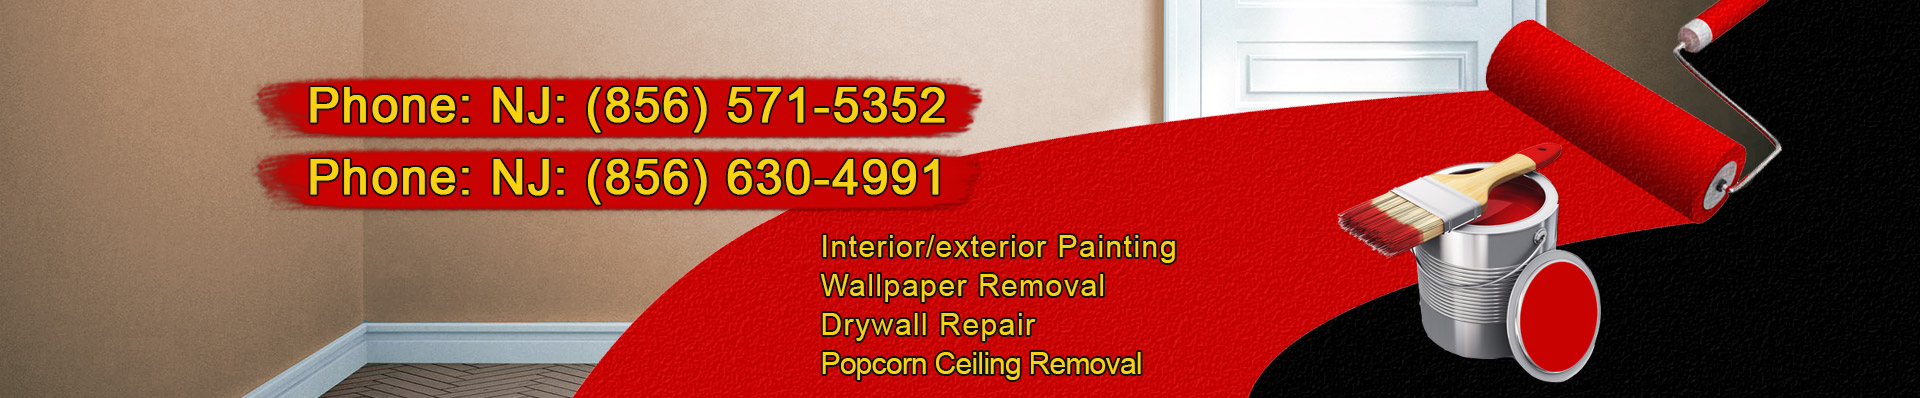 South Jersey and Philadelphia painting contractors - slide image